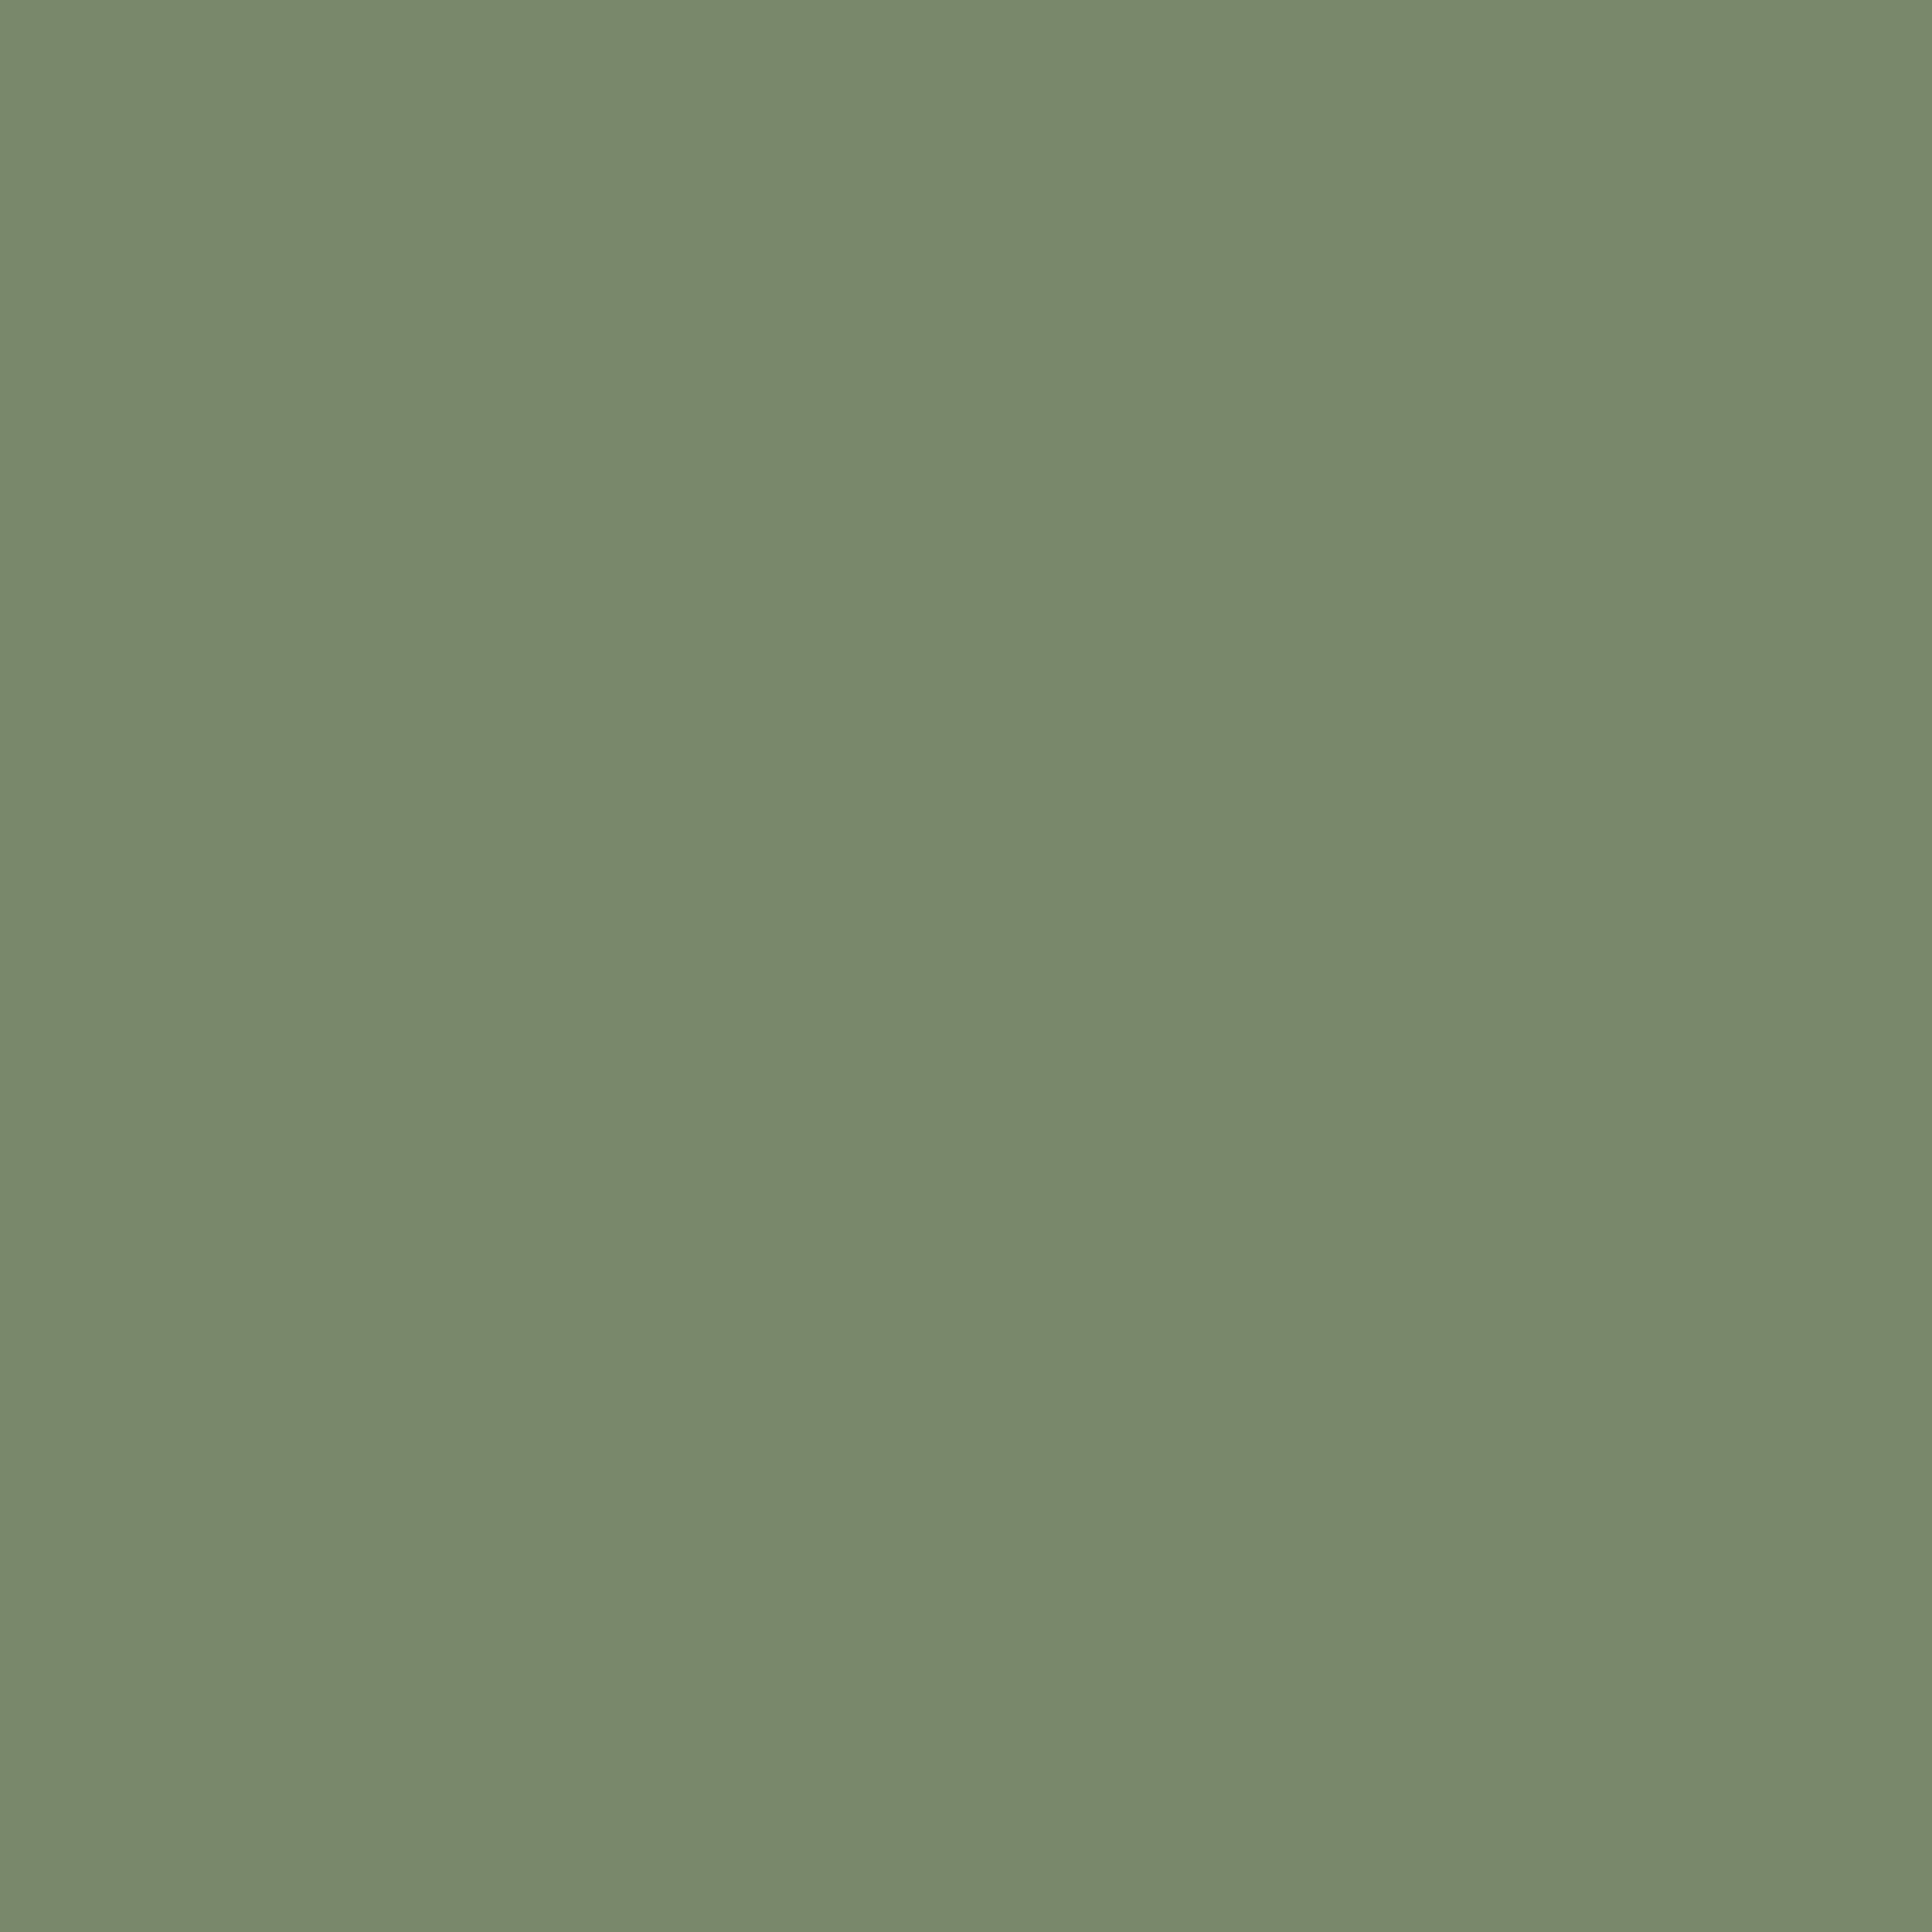 3600x3600 Camouflage Green Solid Color Background